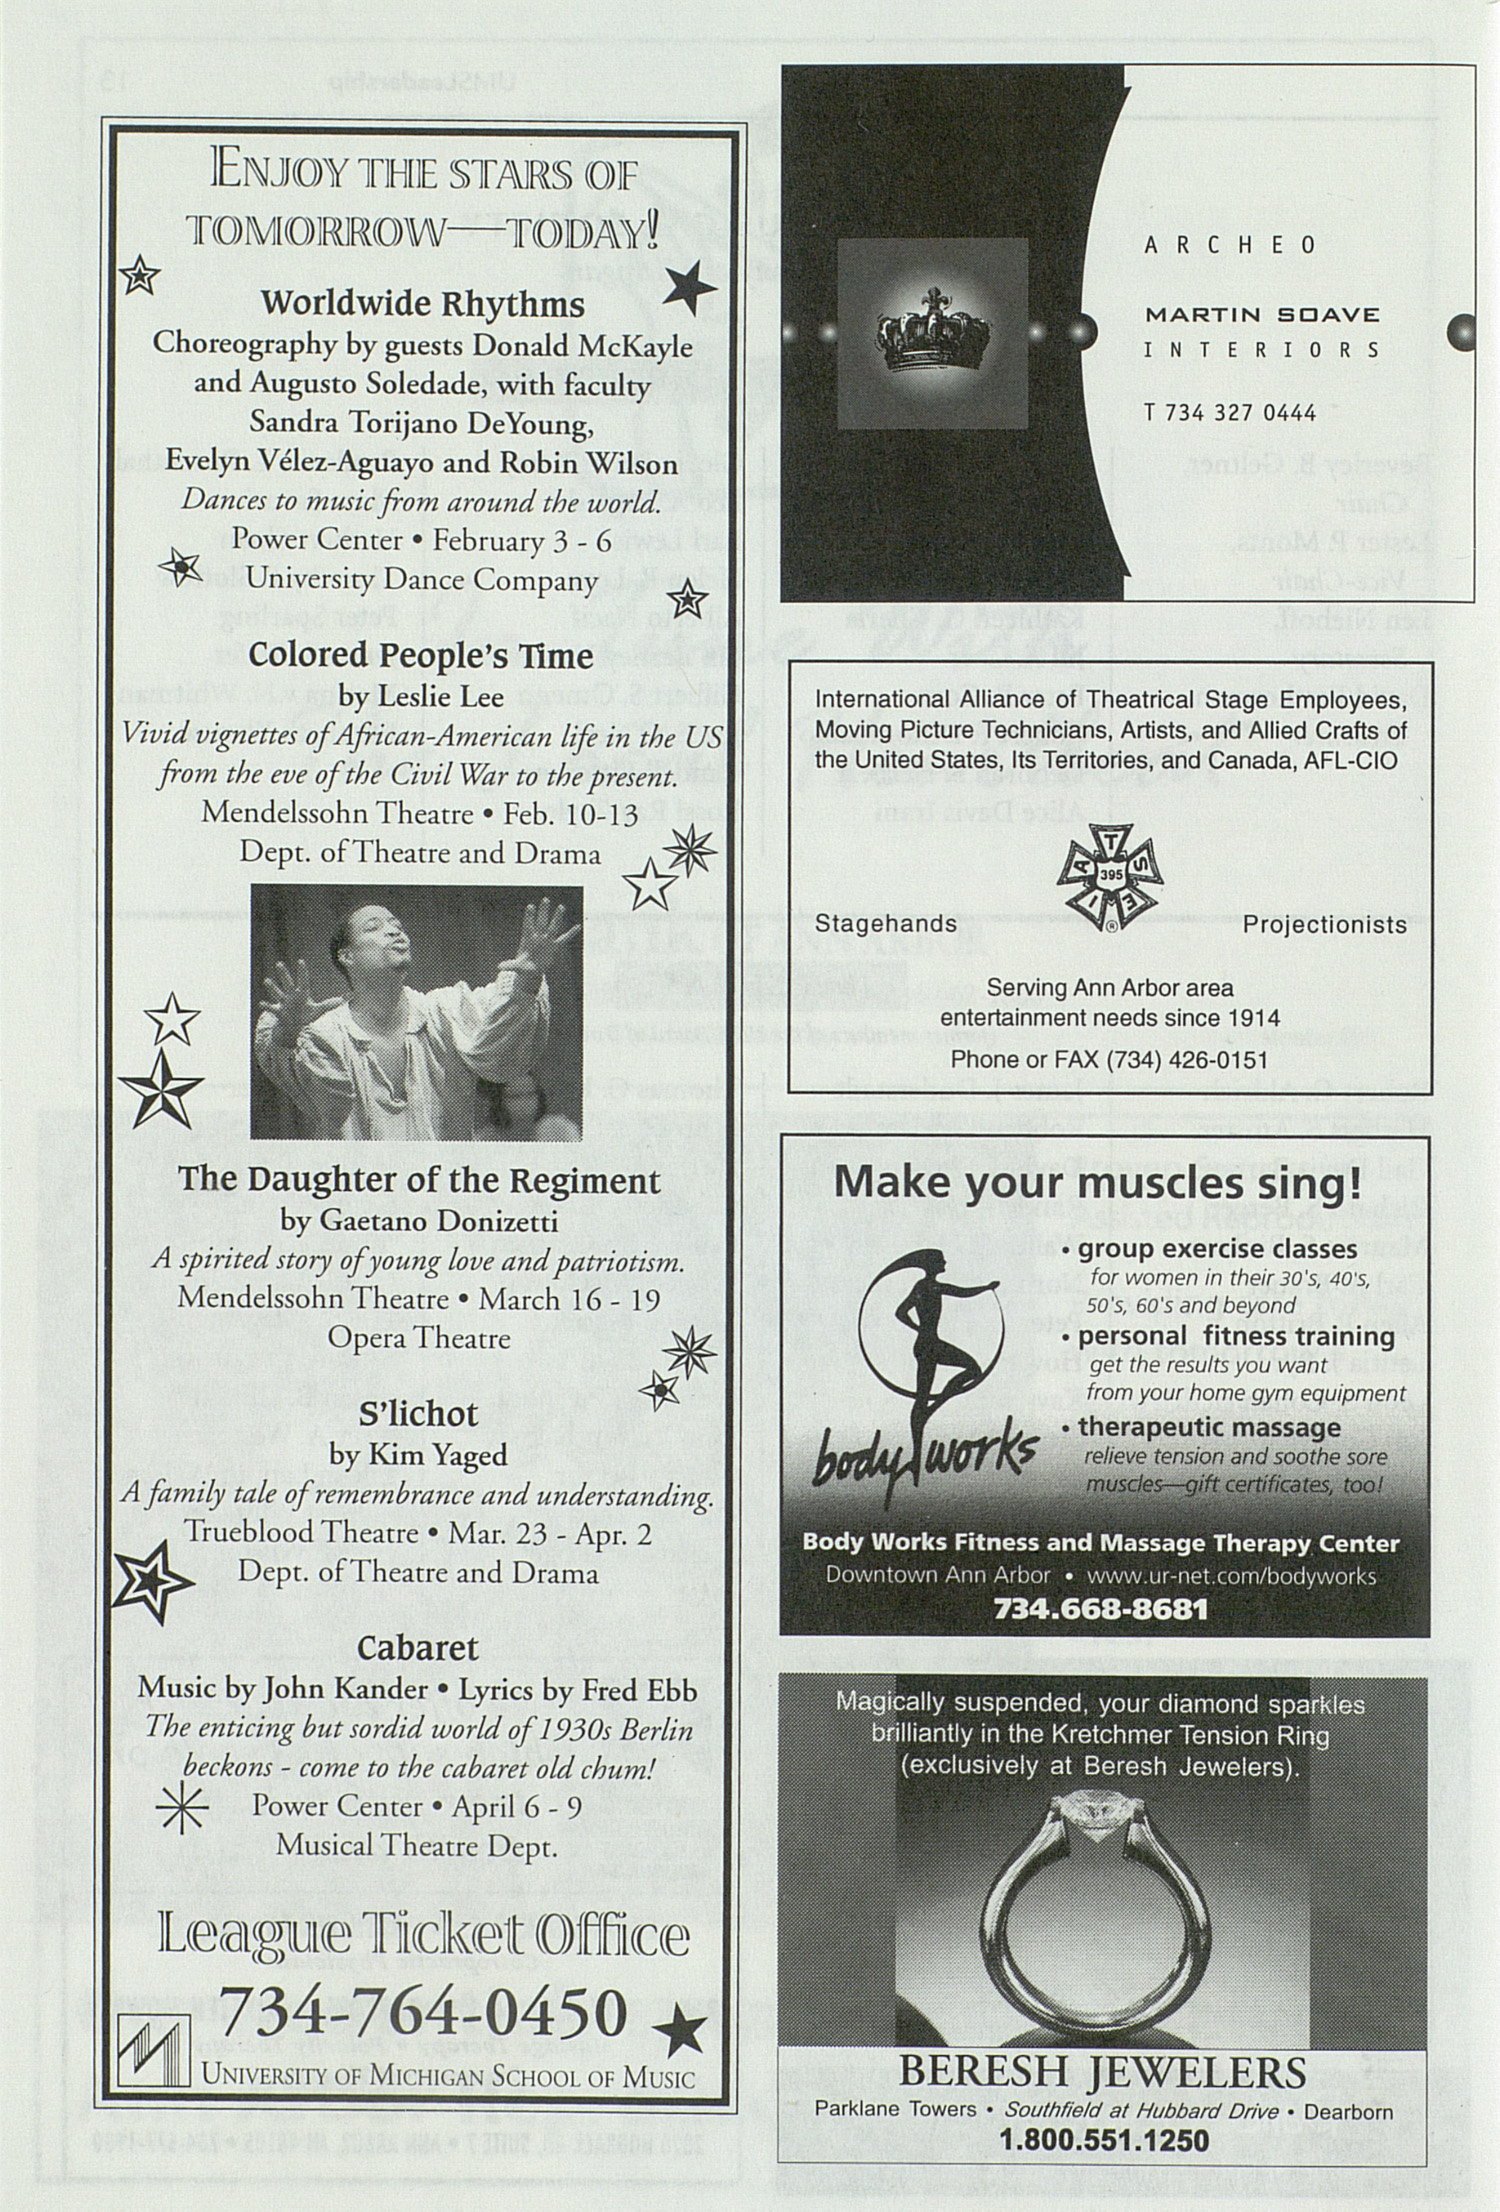 UMS Concert Program, Saturday Feb. 12 To 20: University Musical Society: 1999-2000 Winter - Saturday Feb. 12 To 20 --  image